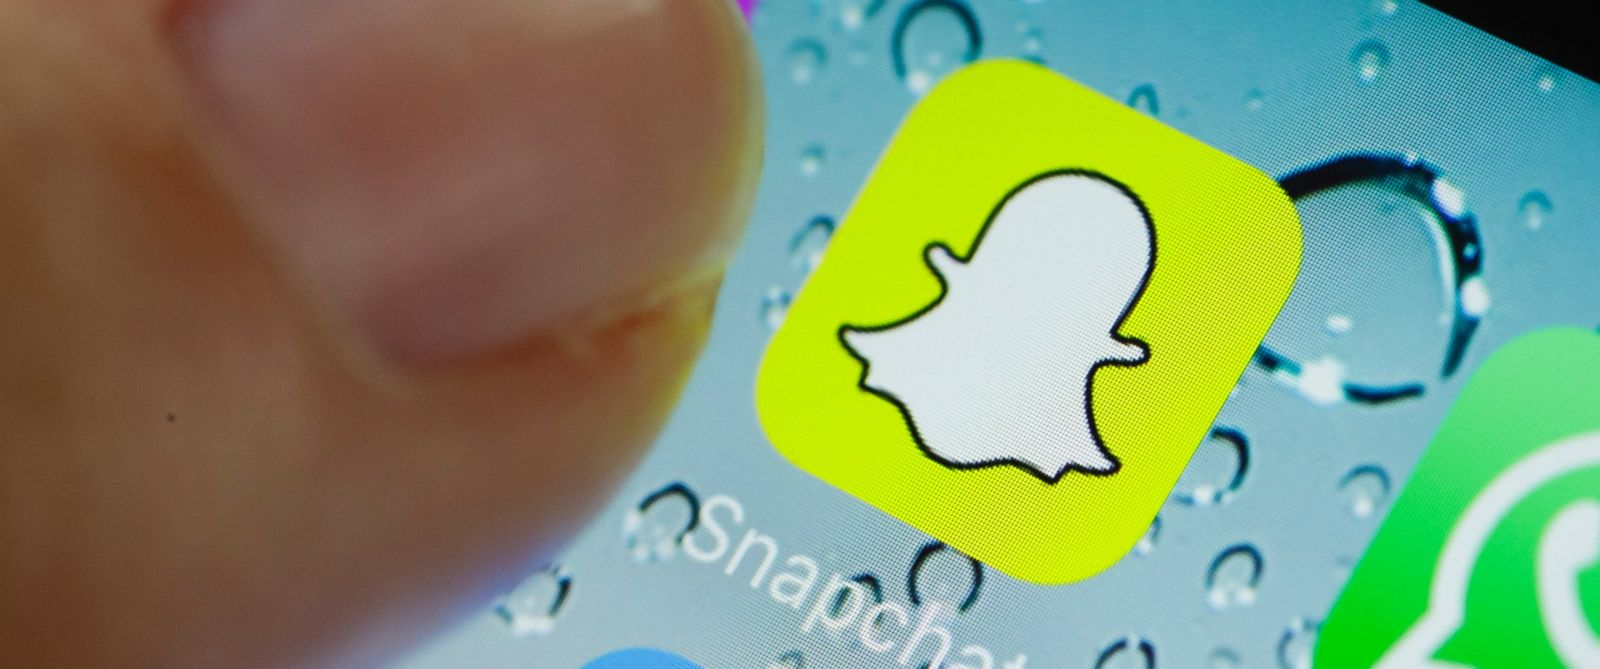 how to delete snap story on new snapchat